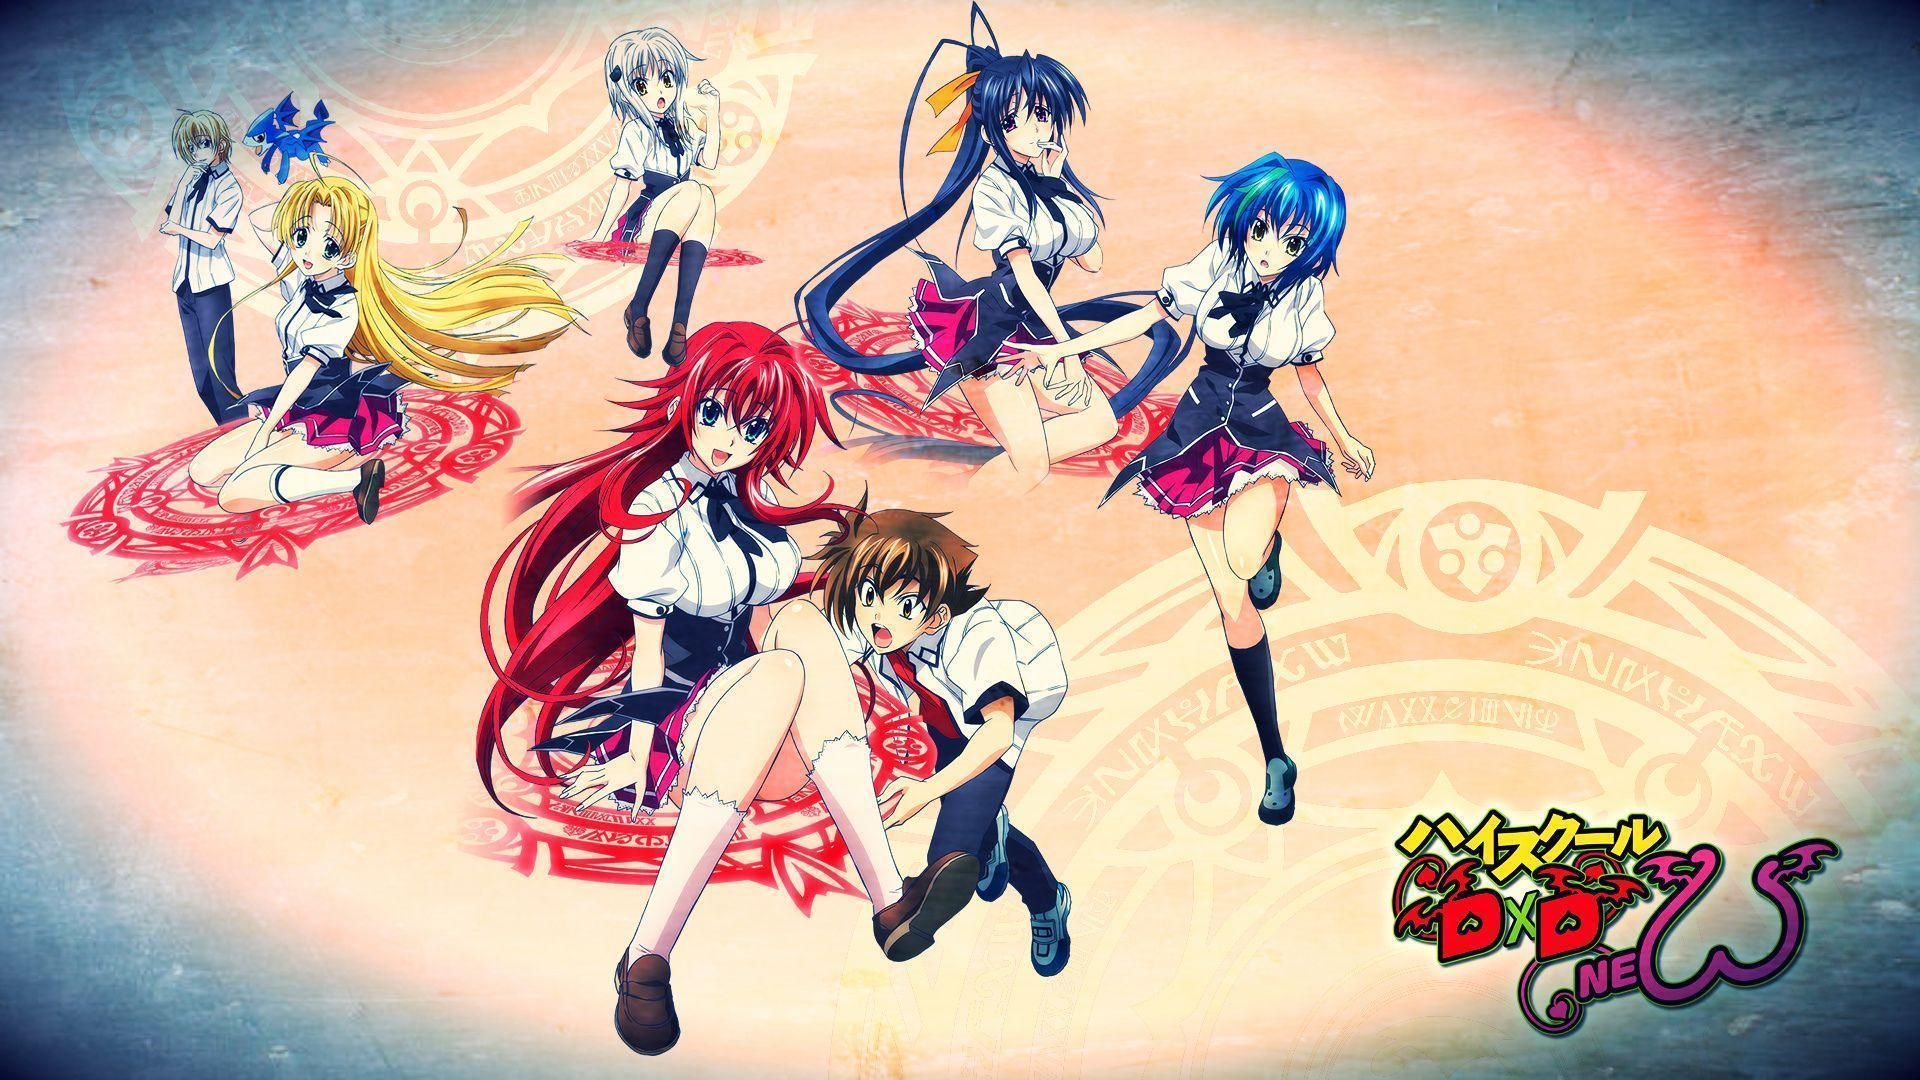 Highschool DxD New Wallpaper Computer Wallpapers, Desktop ...